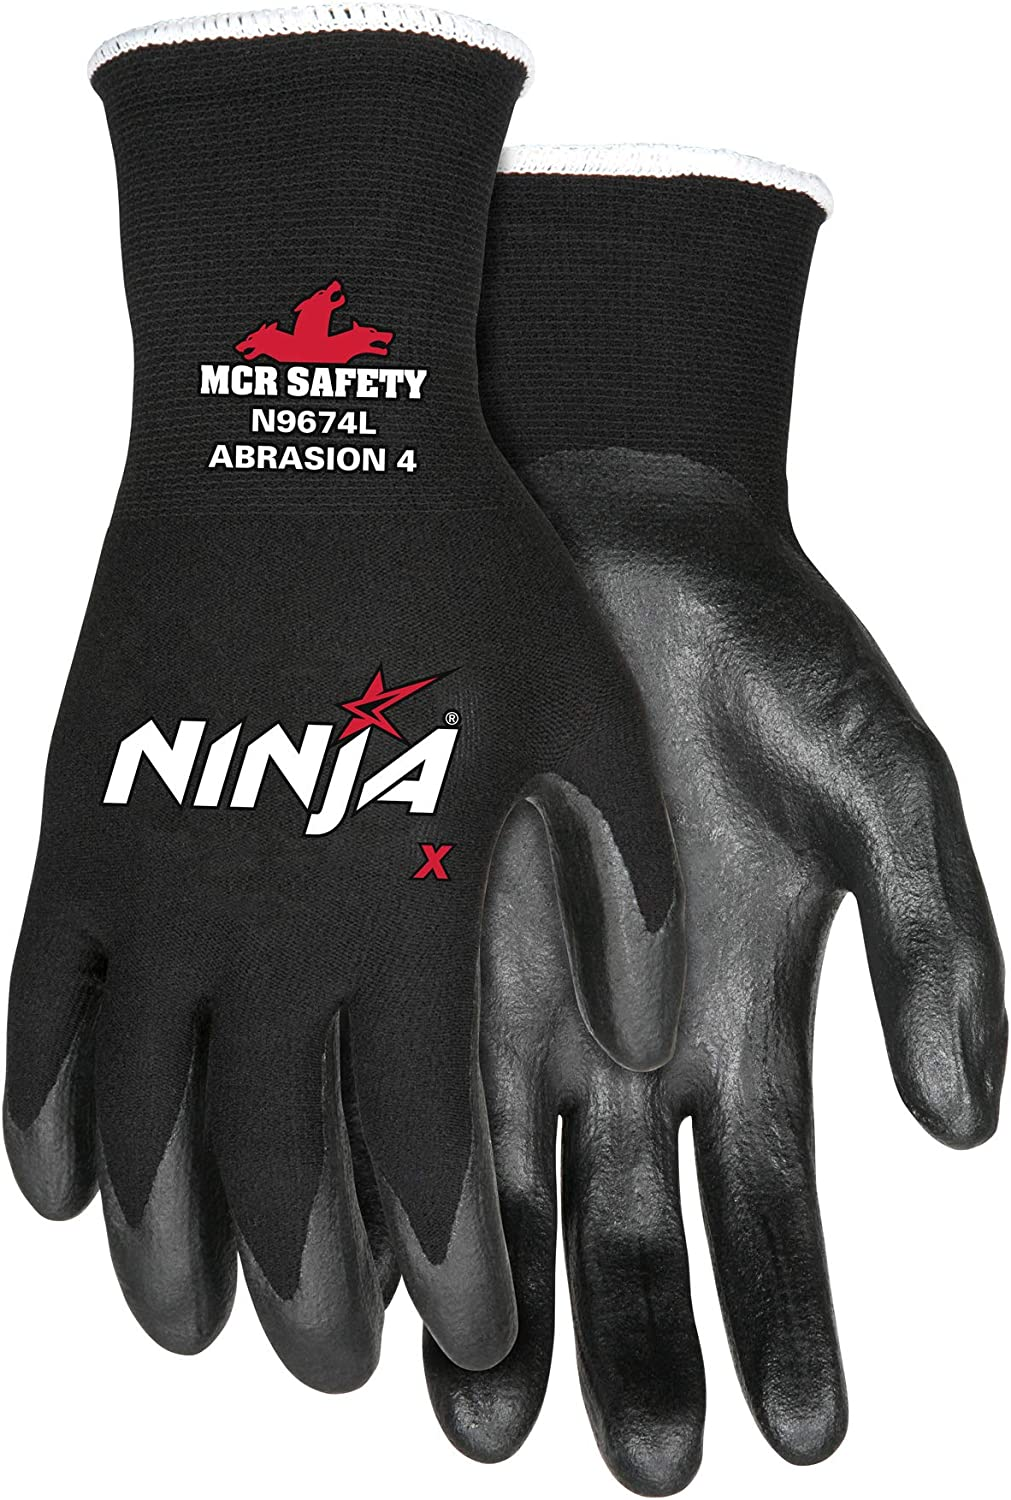 Memphis Glove N9674M Ninja X Nylon/Spandex Shell Gloves with Bi-Polymer Dipped Palm and Fingertips, Black, Medium, 1-Pair